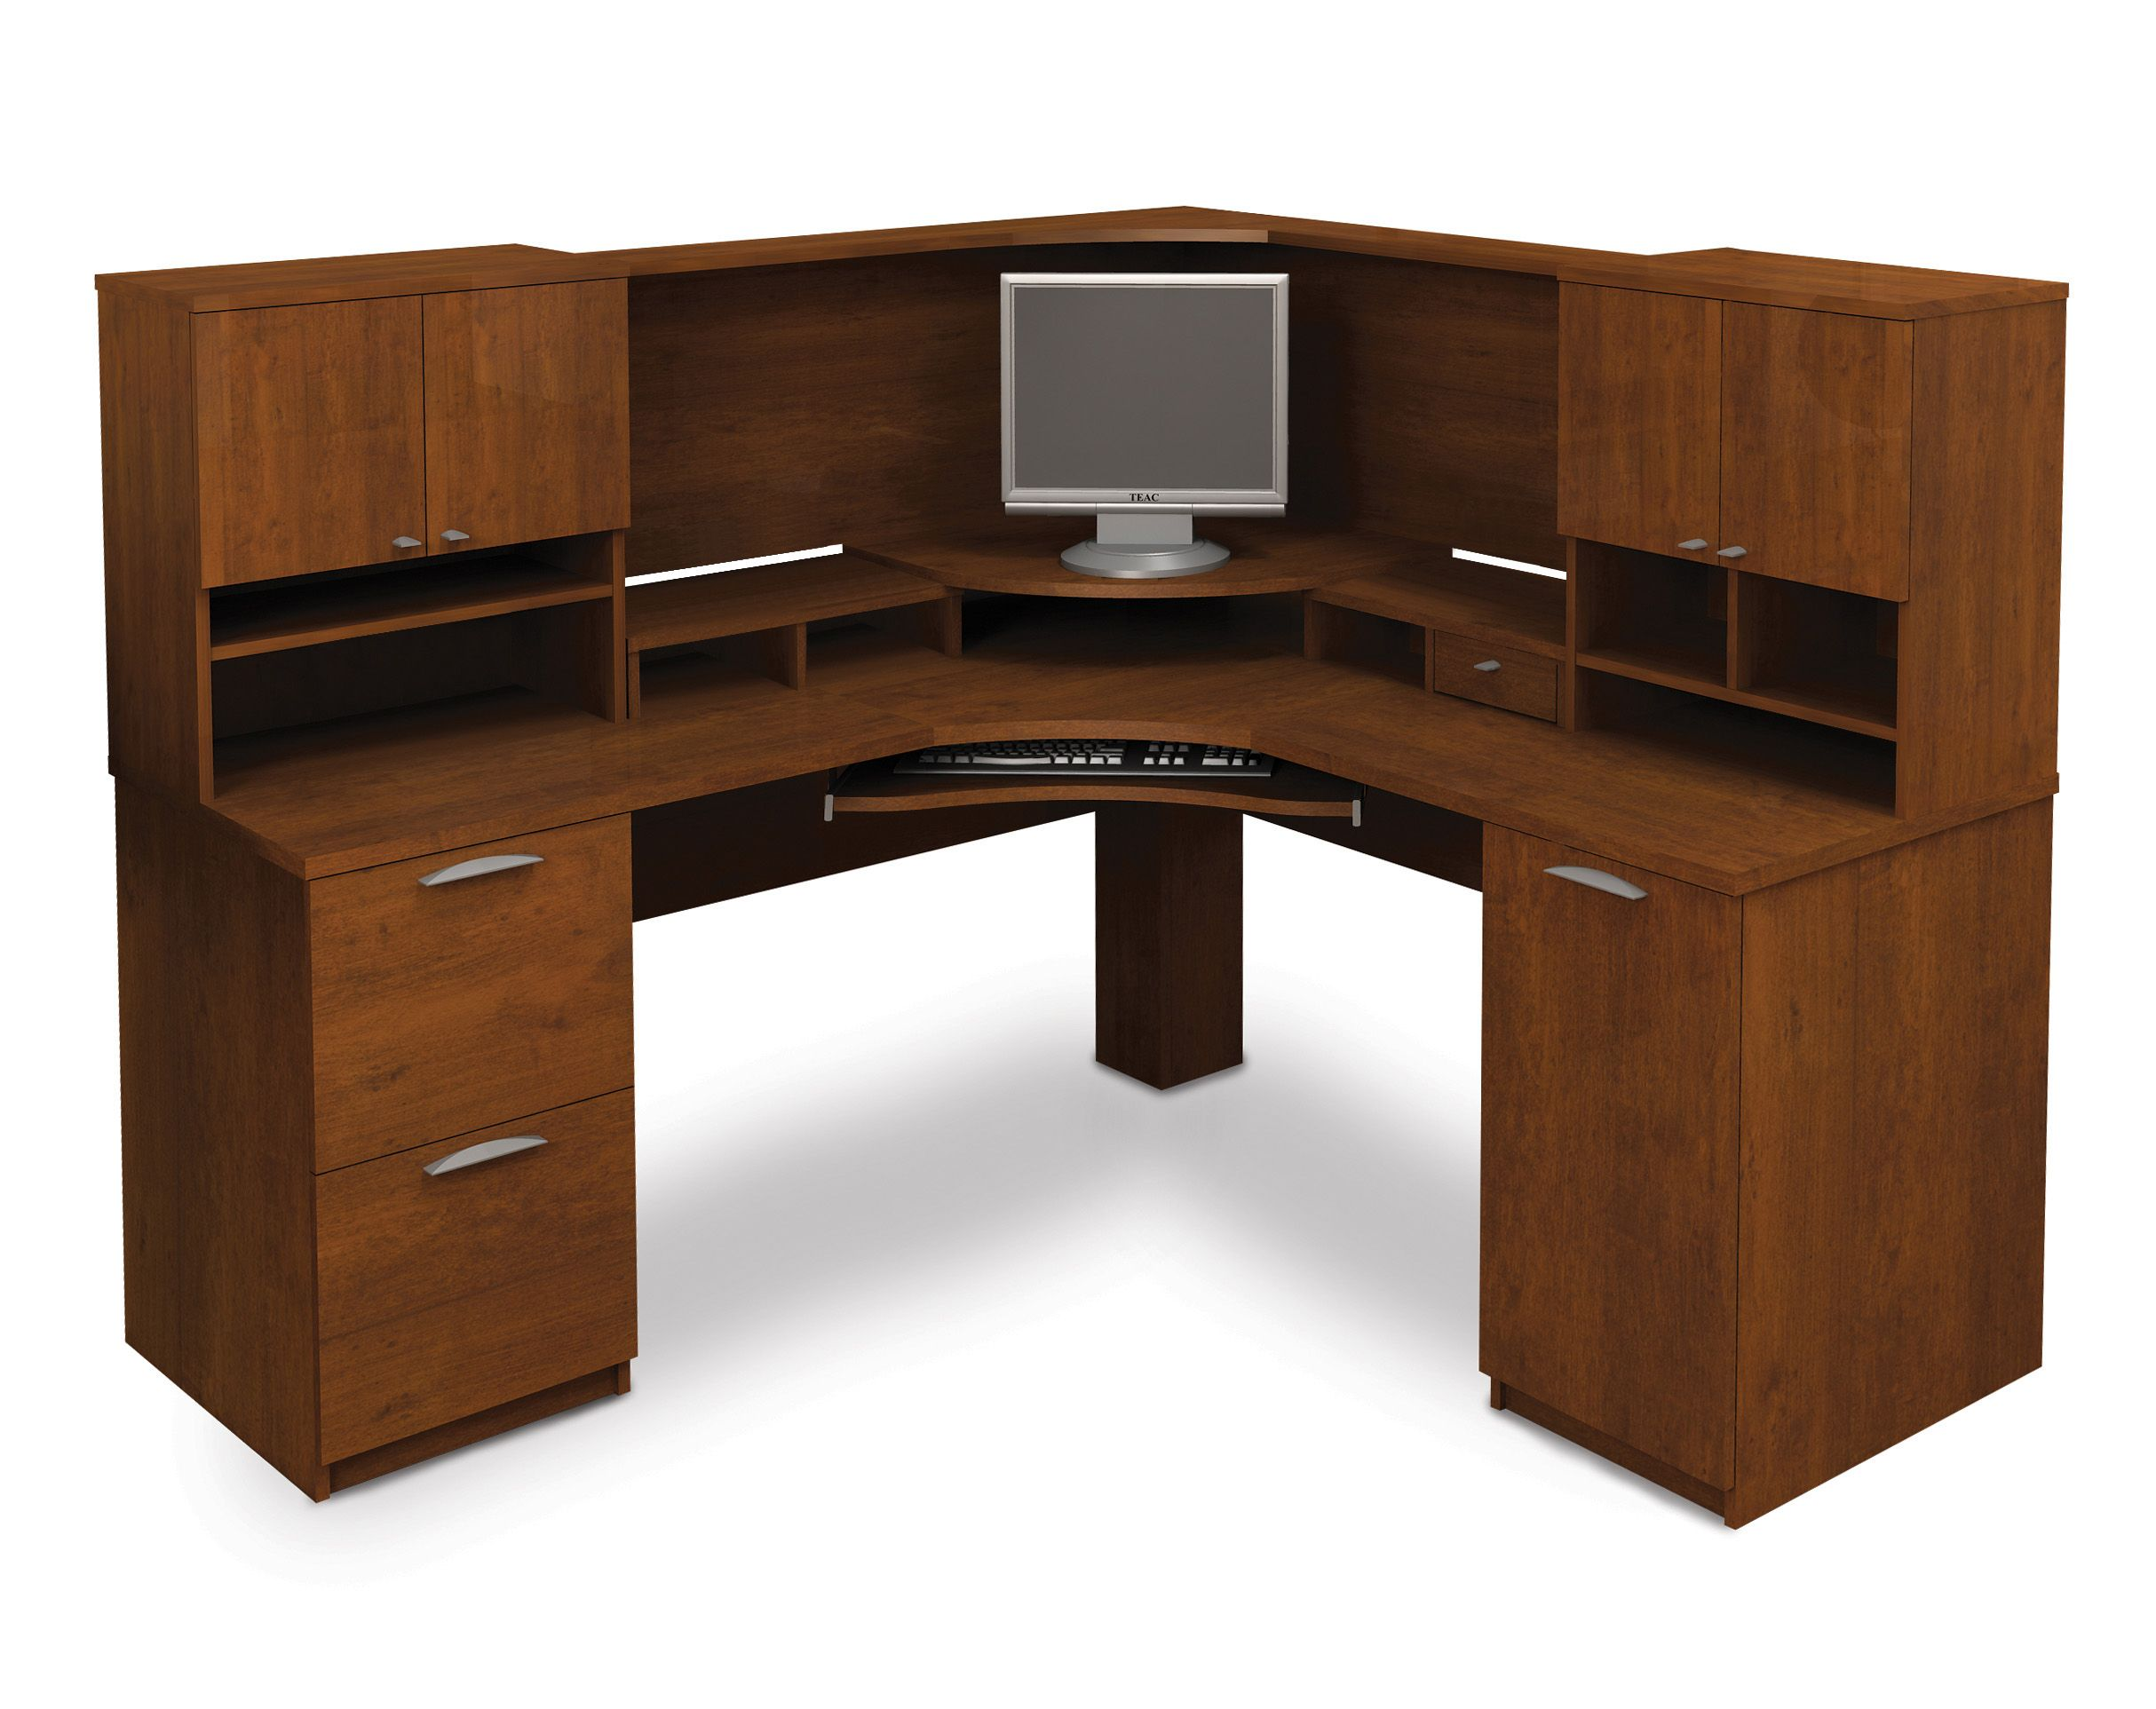 great office desks.  desks computer desk hutch plans plan 03 602 corner desk combo price  available get 2 great woodworking for a student dorm room to great office desks d